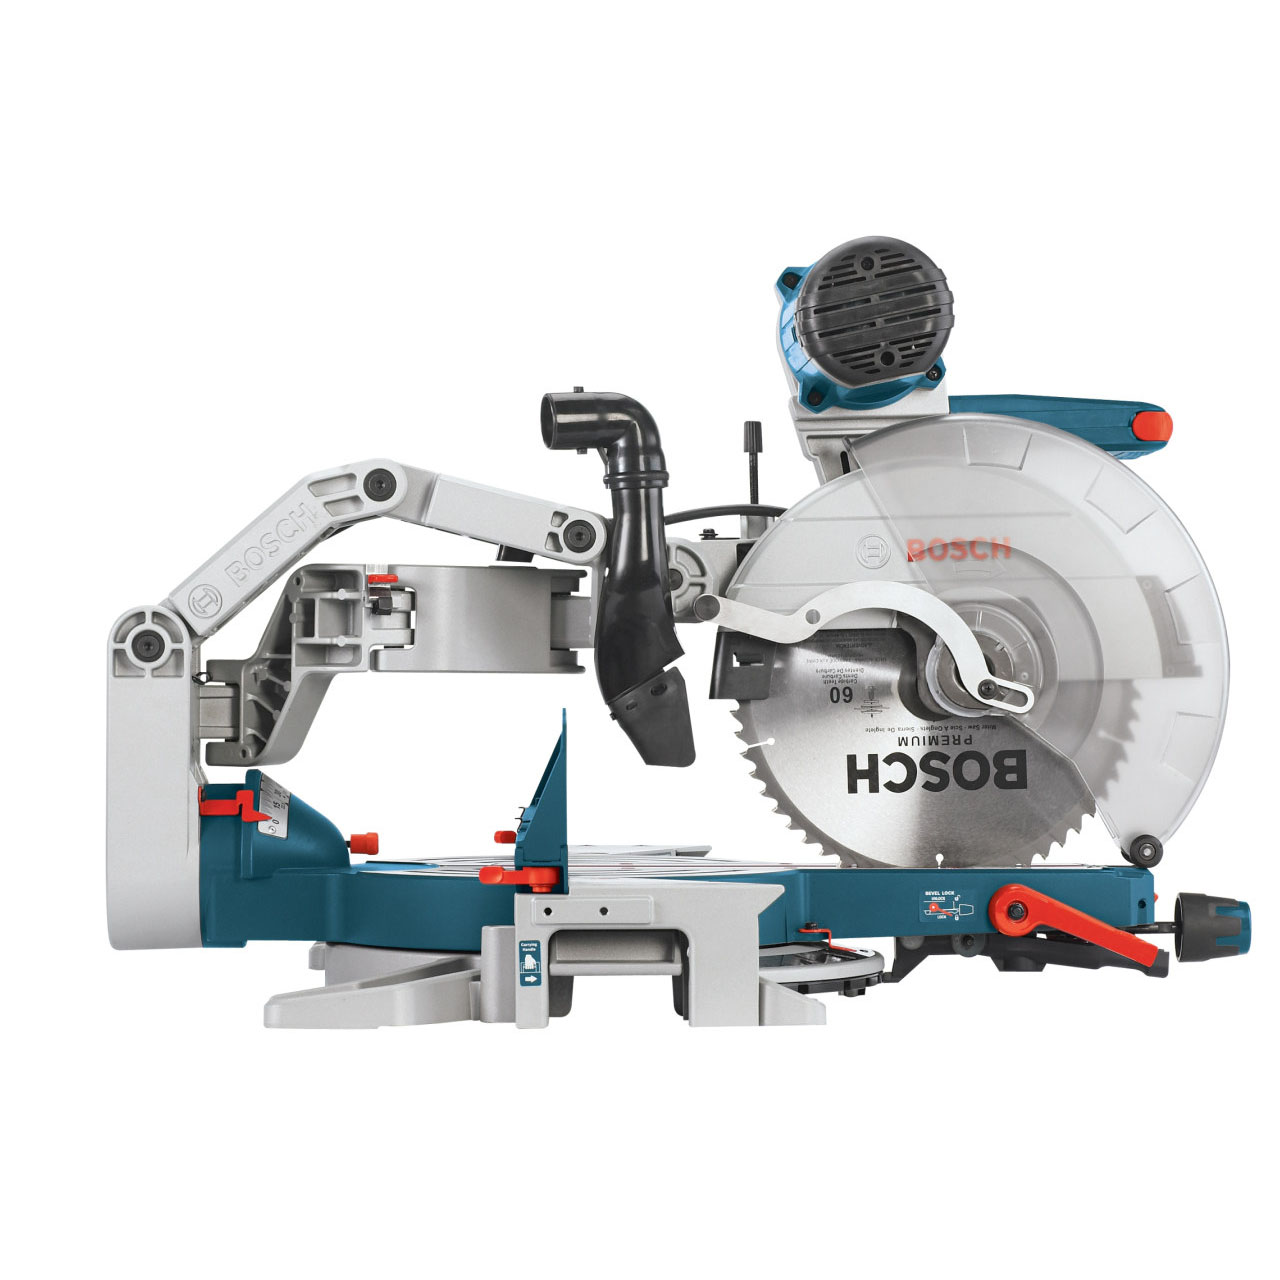 Bosch GCM12SD Axial-Glide Miter Saw - The Tool Corner